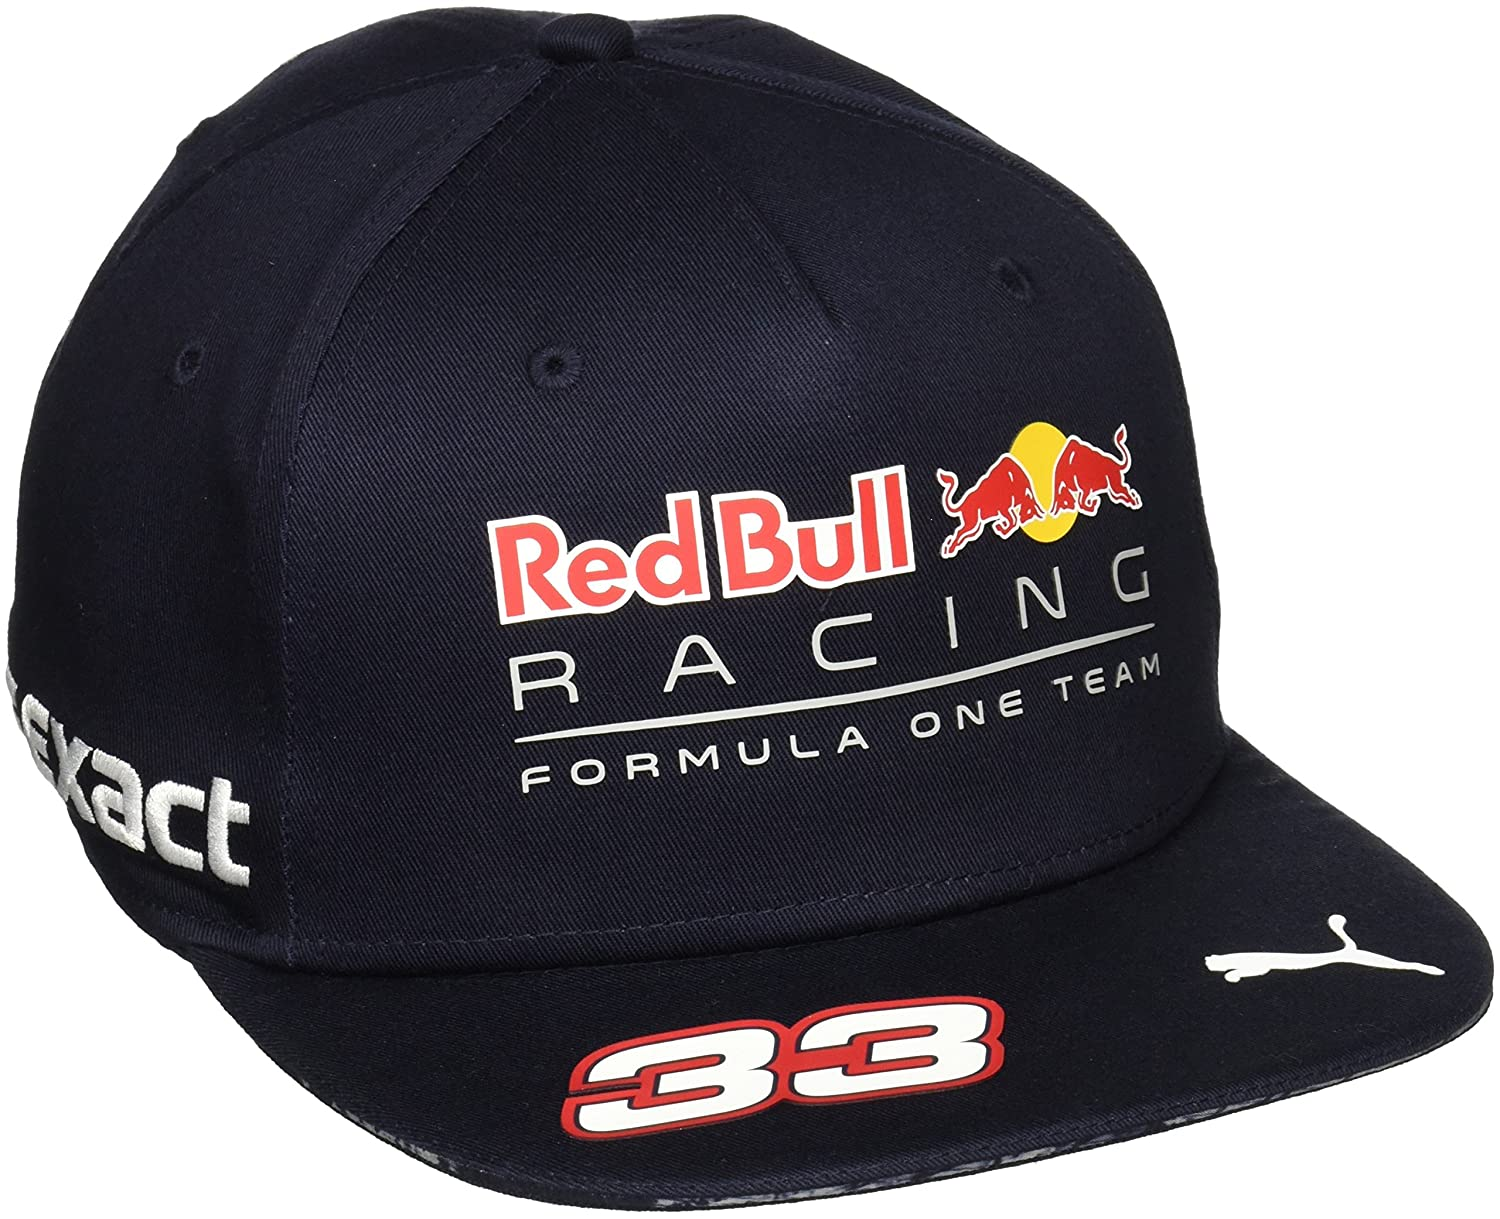 df96fdf9294a2 Puma Red Bull Racing Replica Verstappen Cap Sr  Amazon.co.uk  Sports    Outdoors